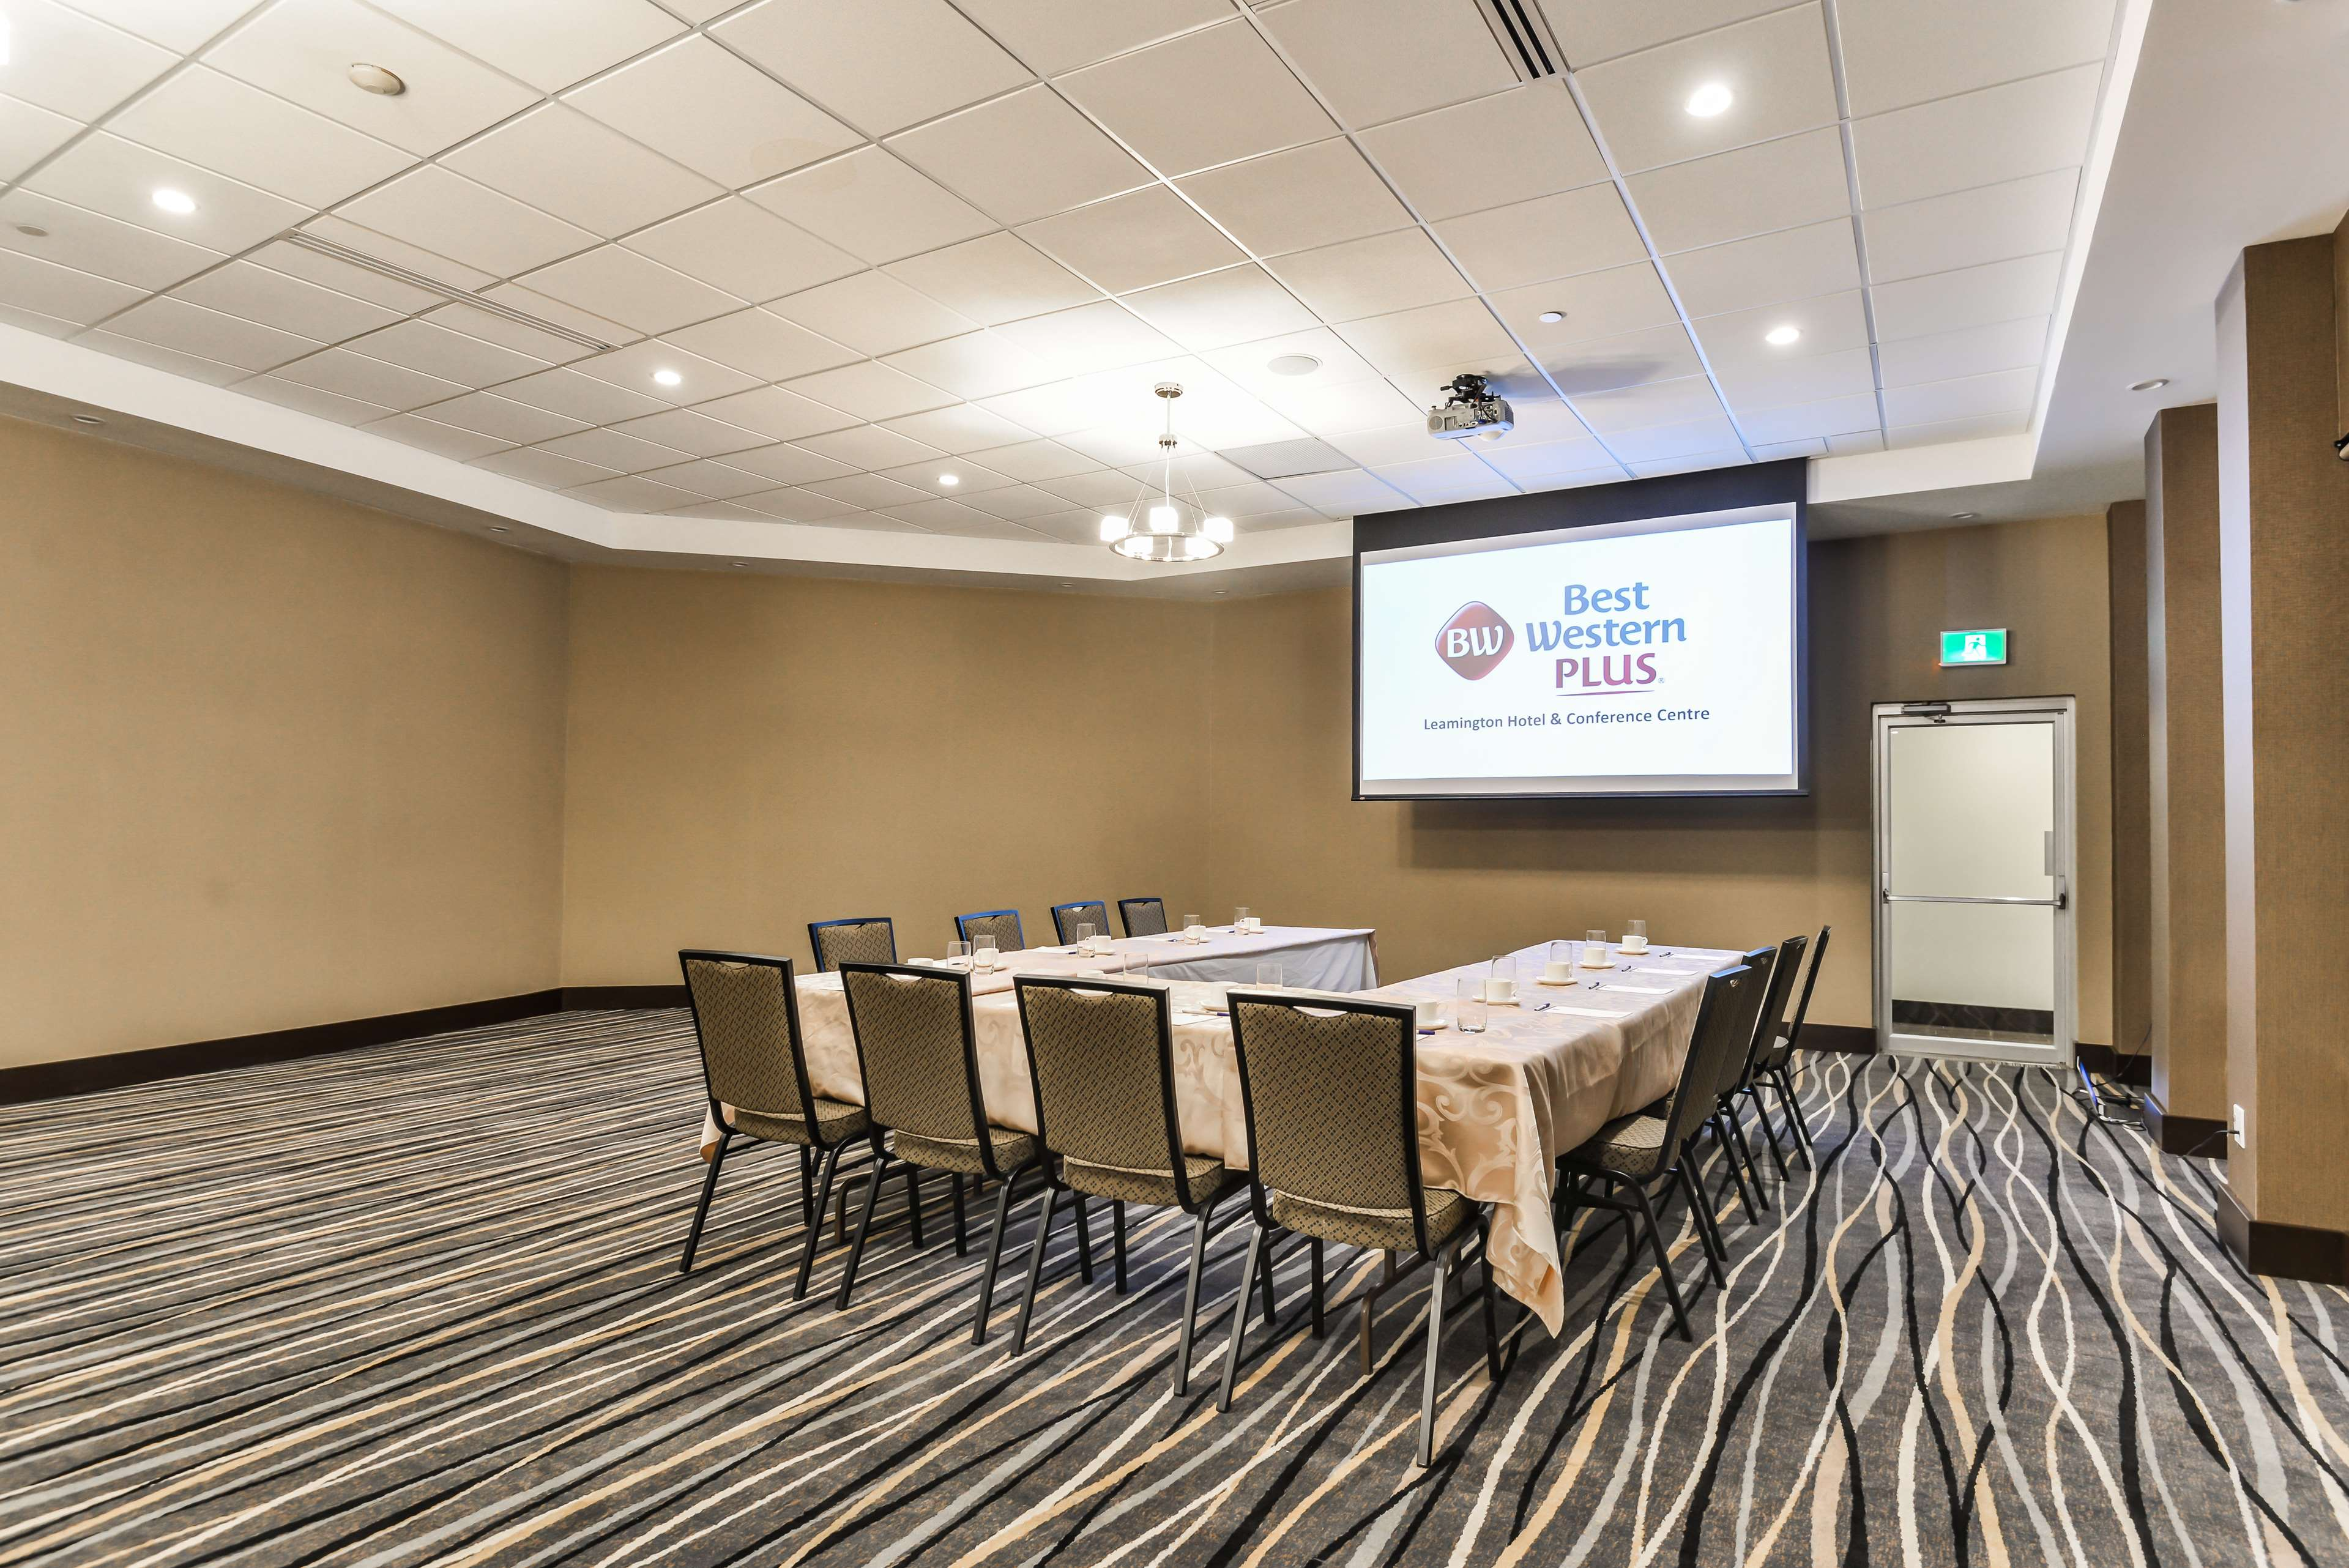 Meeting Room Best Western Plus Leamington Hotel & Conference Centre Leamington (519)326-8646